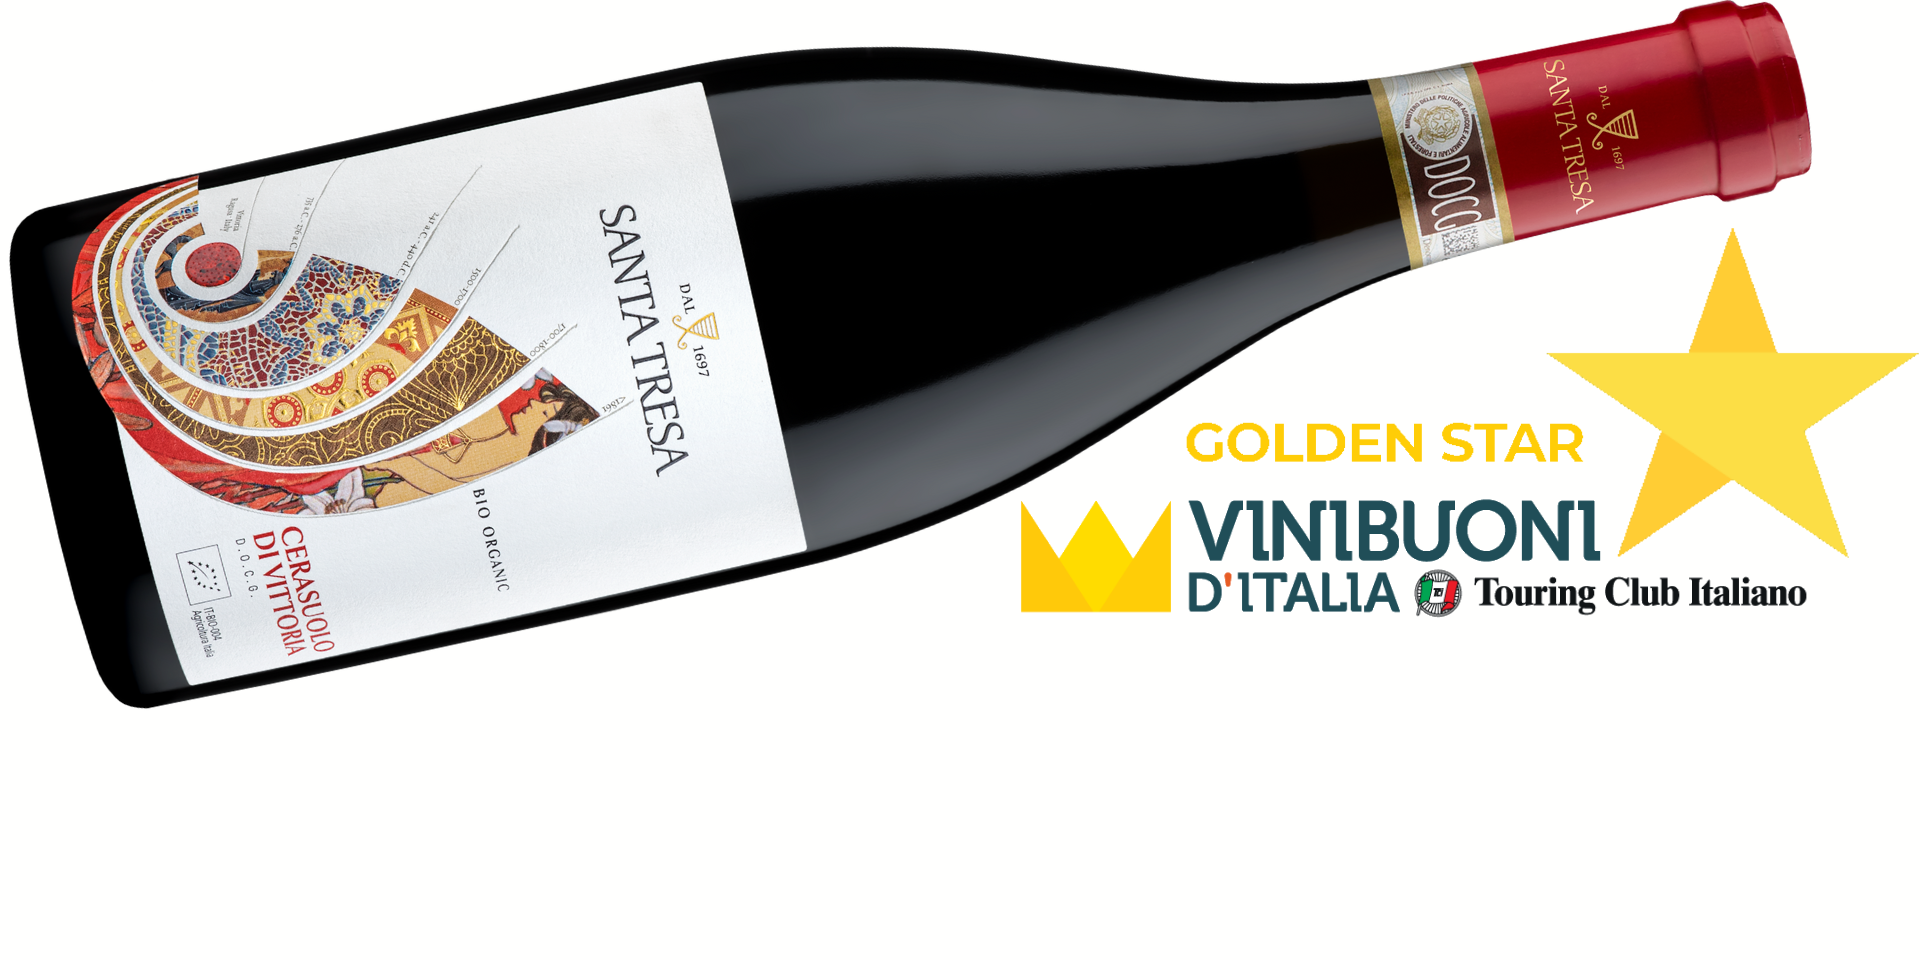 Vinibuoni d'Italia Golden Star